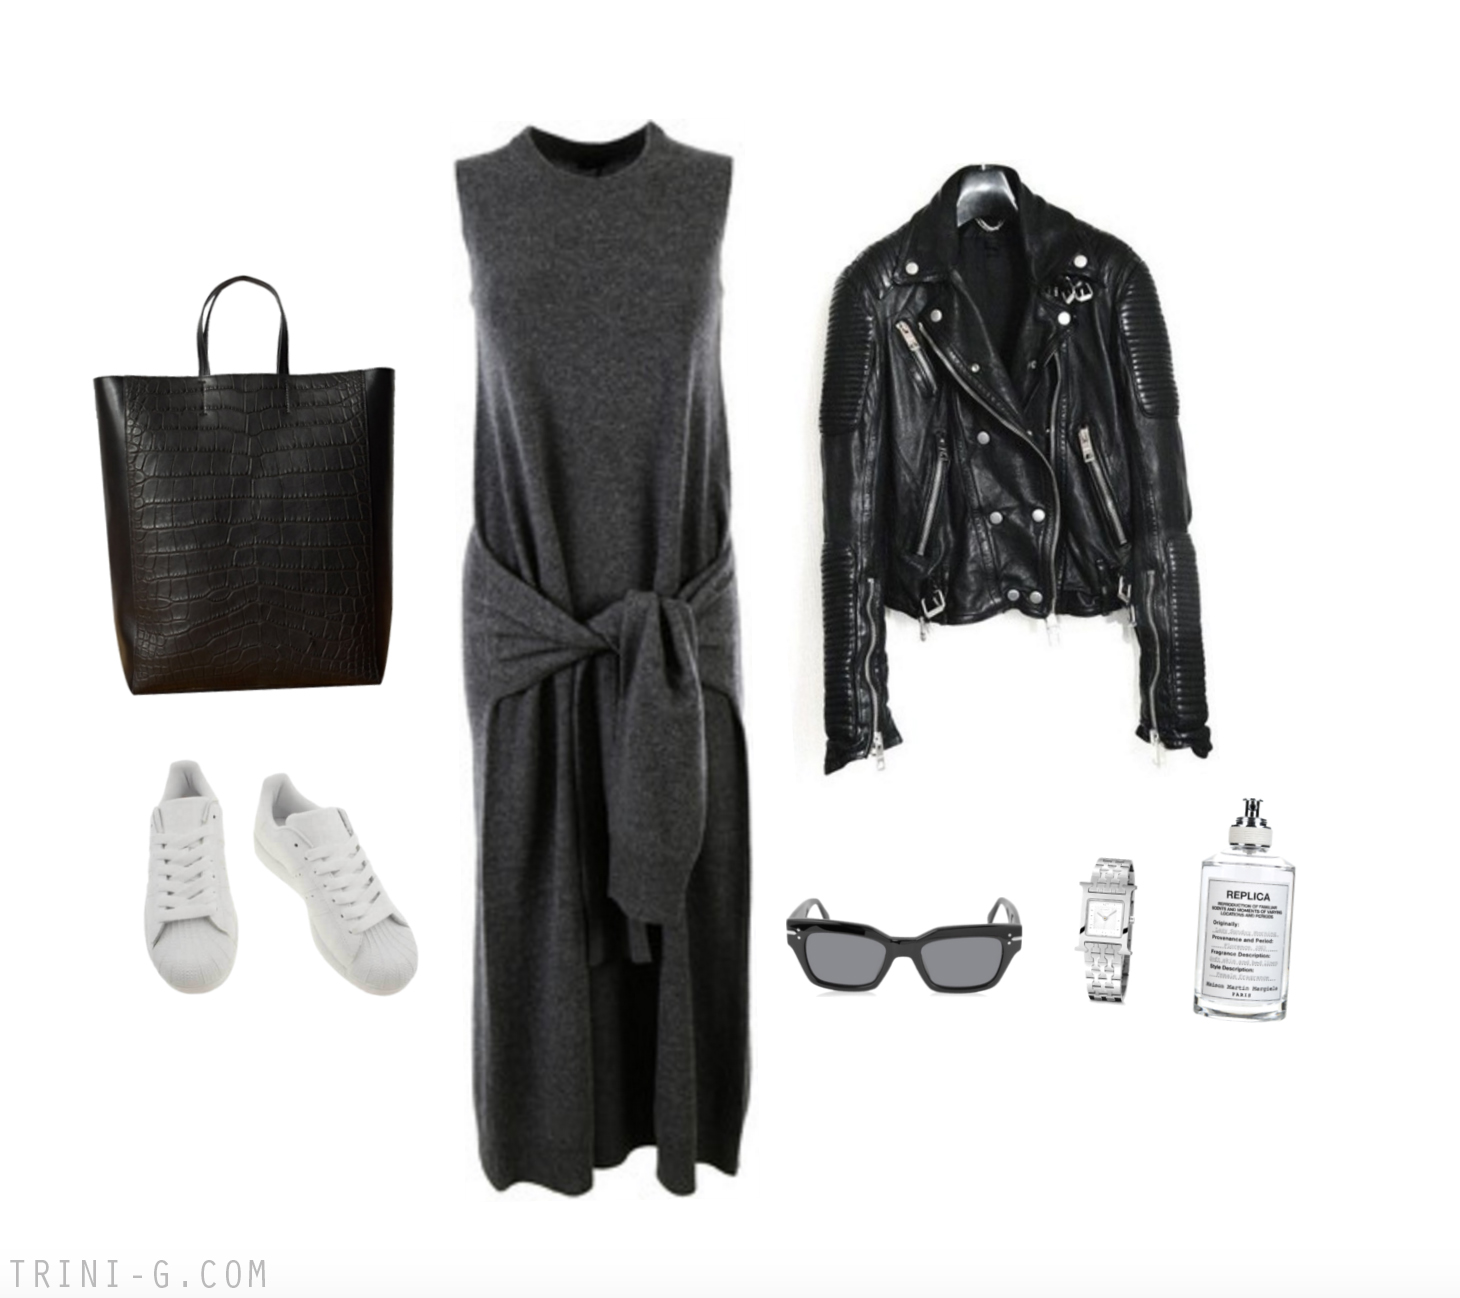 Trini blog|Joseph dress Adidas sneakers Céline bag